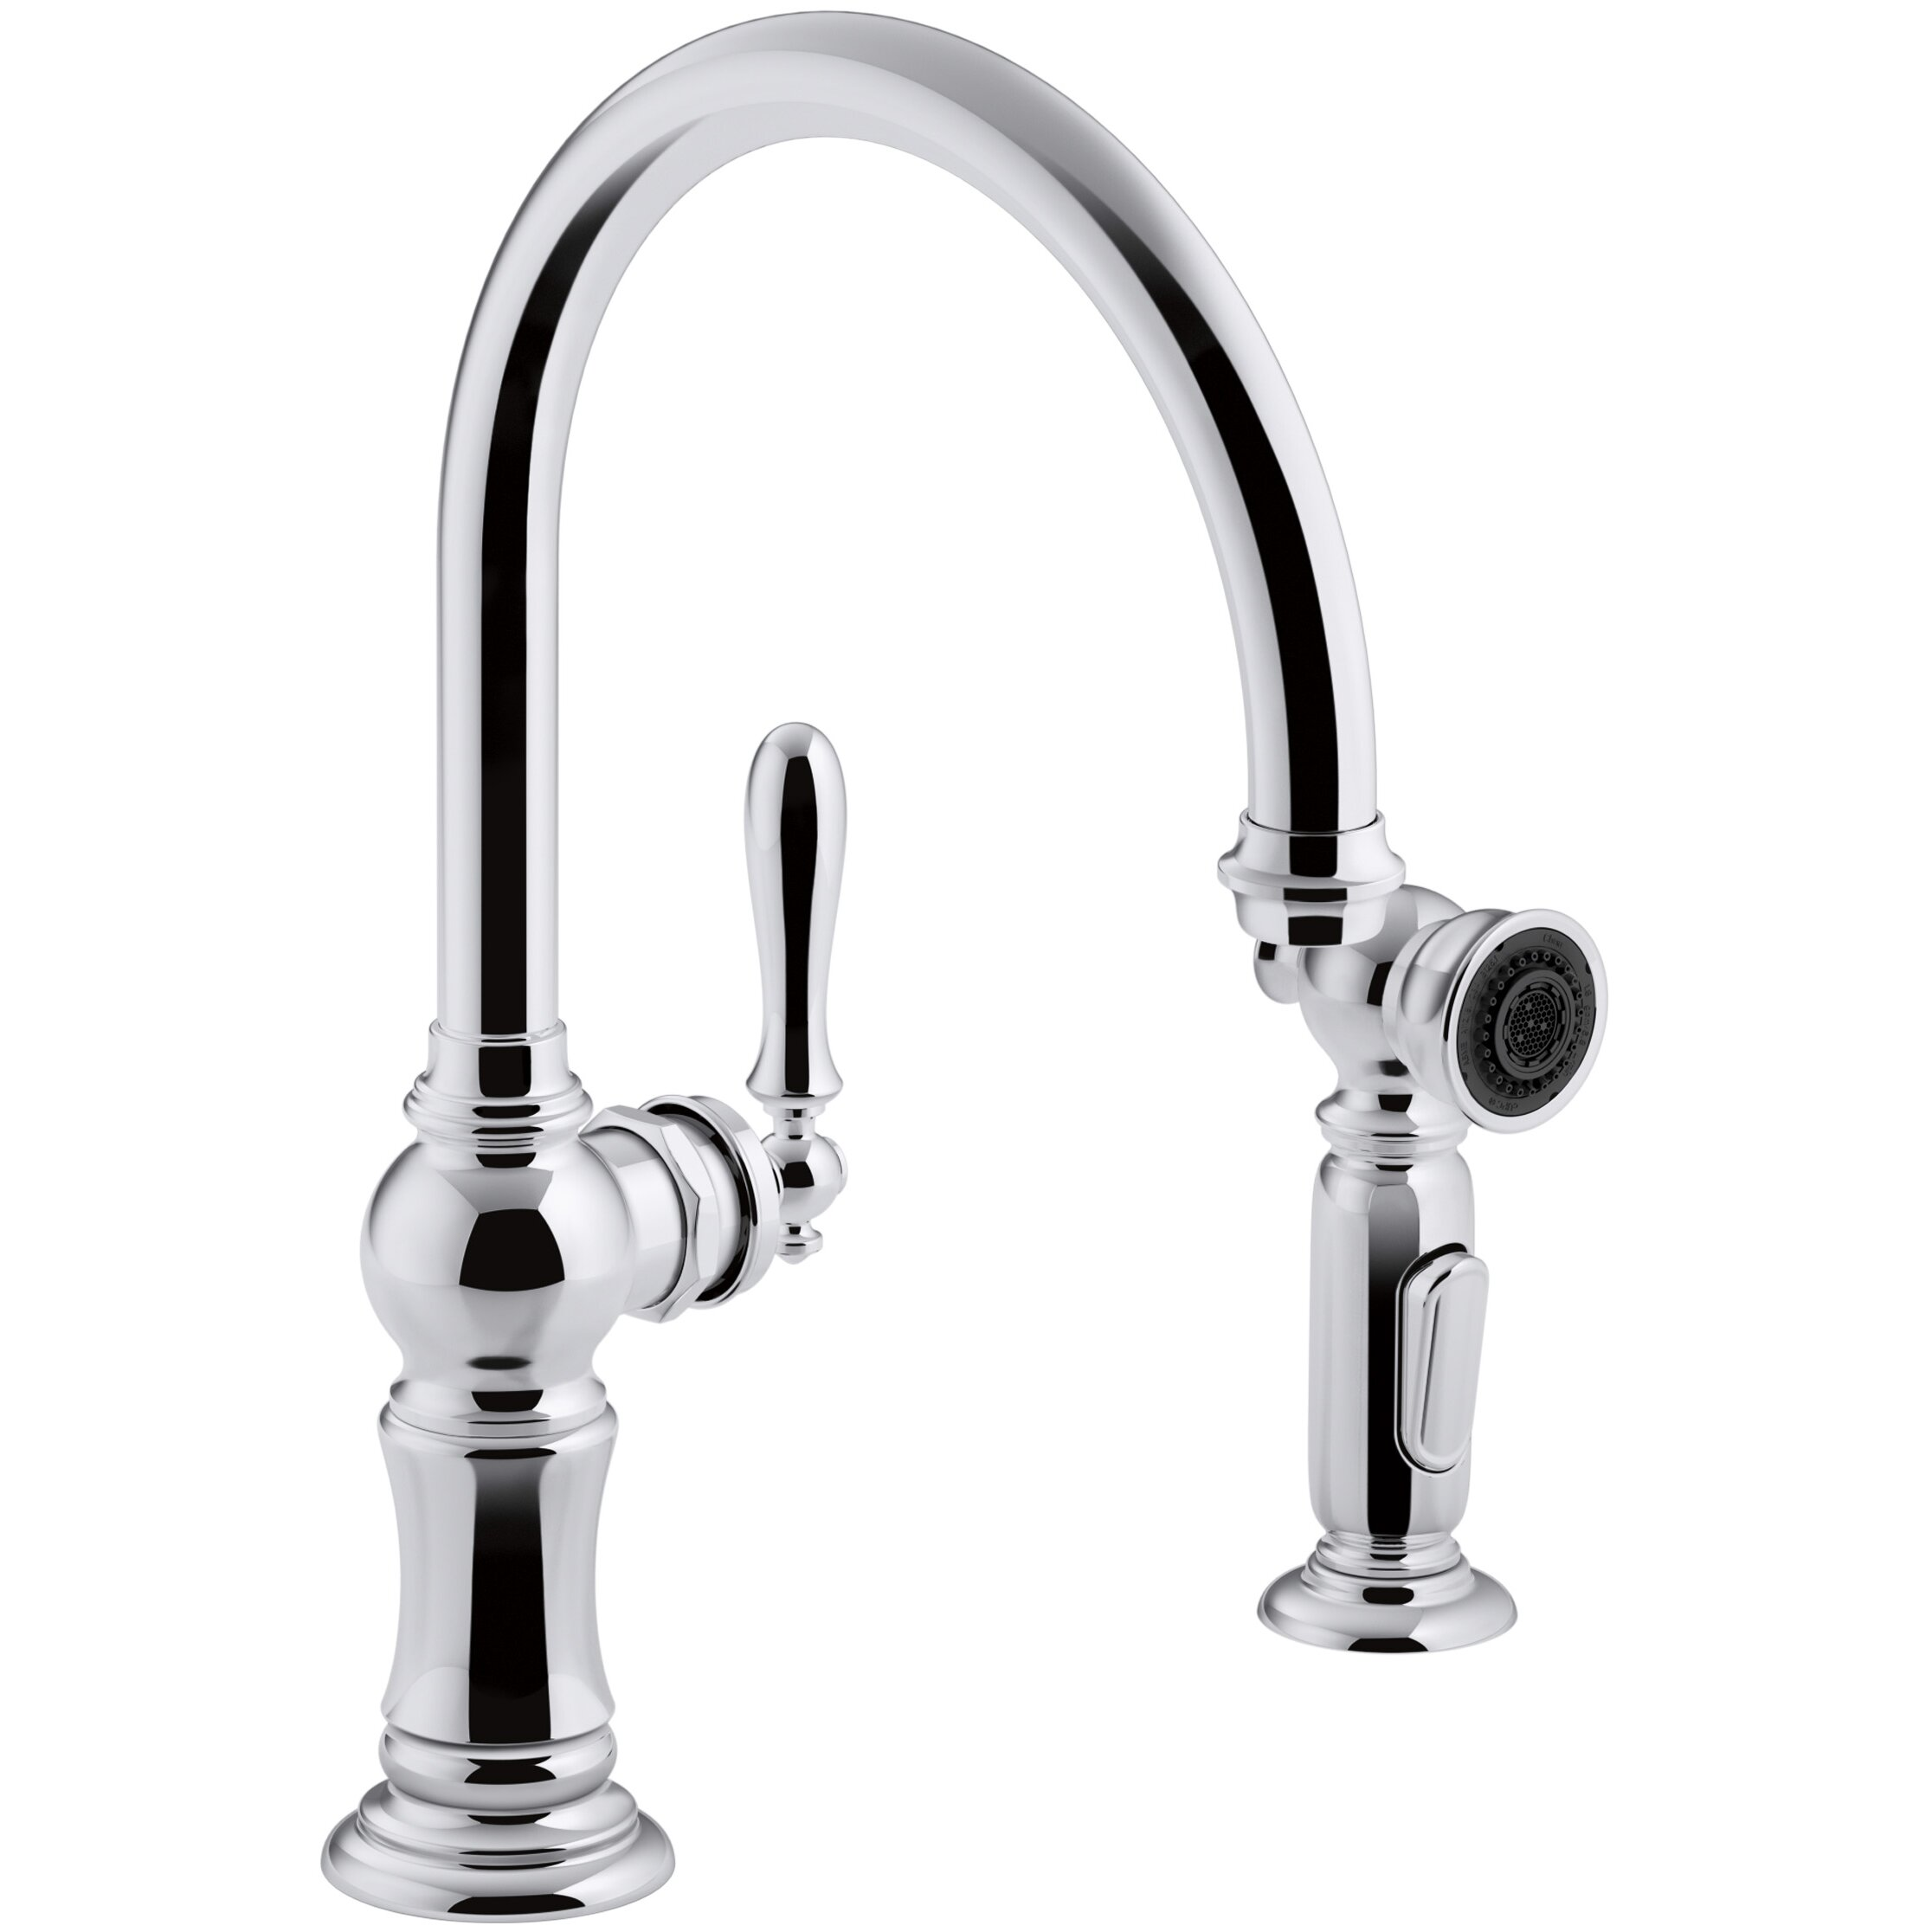 Kohler Faucet Reviews : Kohler Artifacts 2-Hole Kitchen Sink Faucet with Swing Spout & Reviews ...